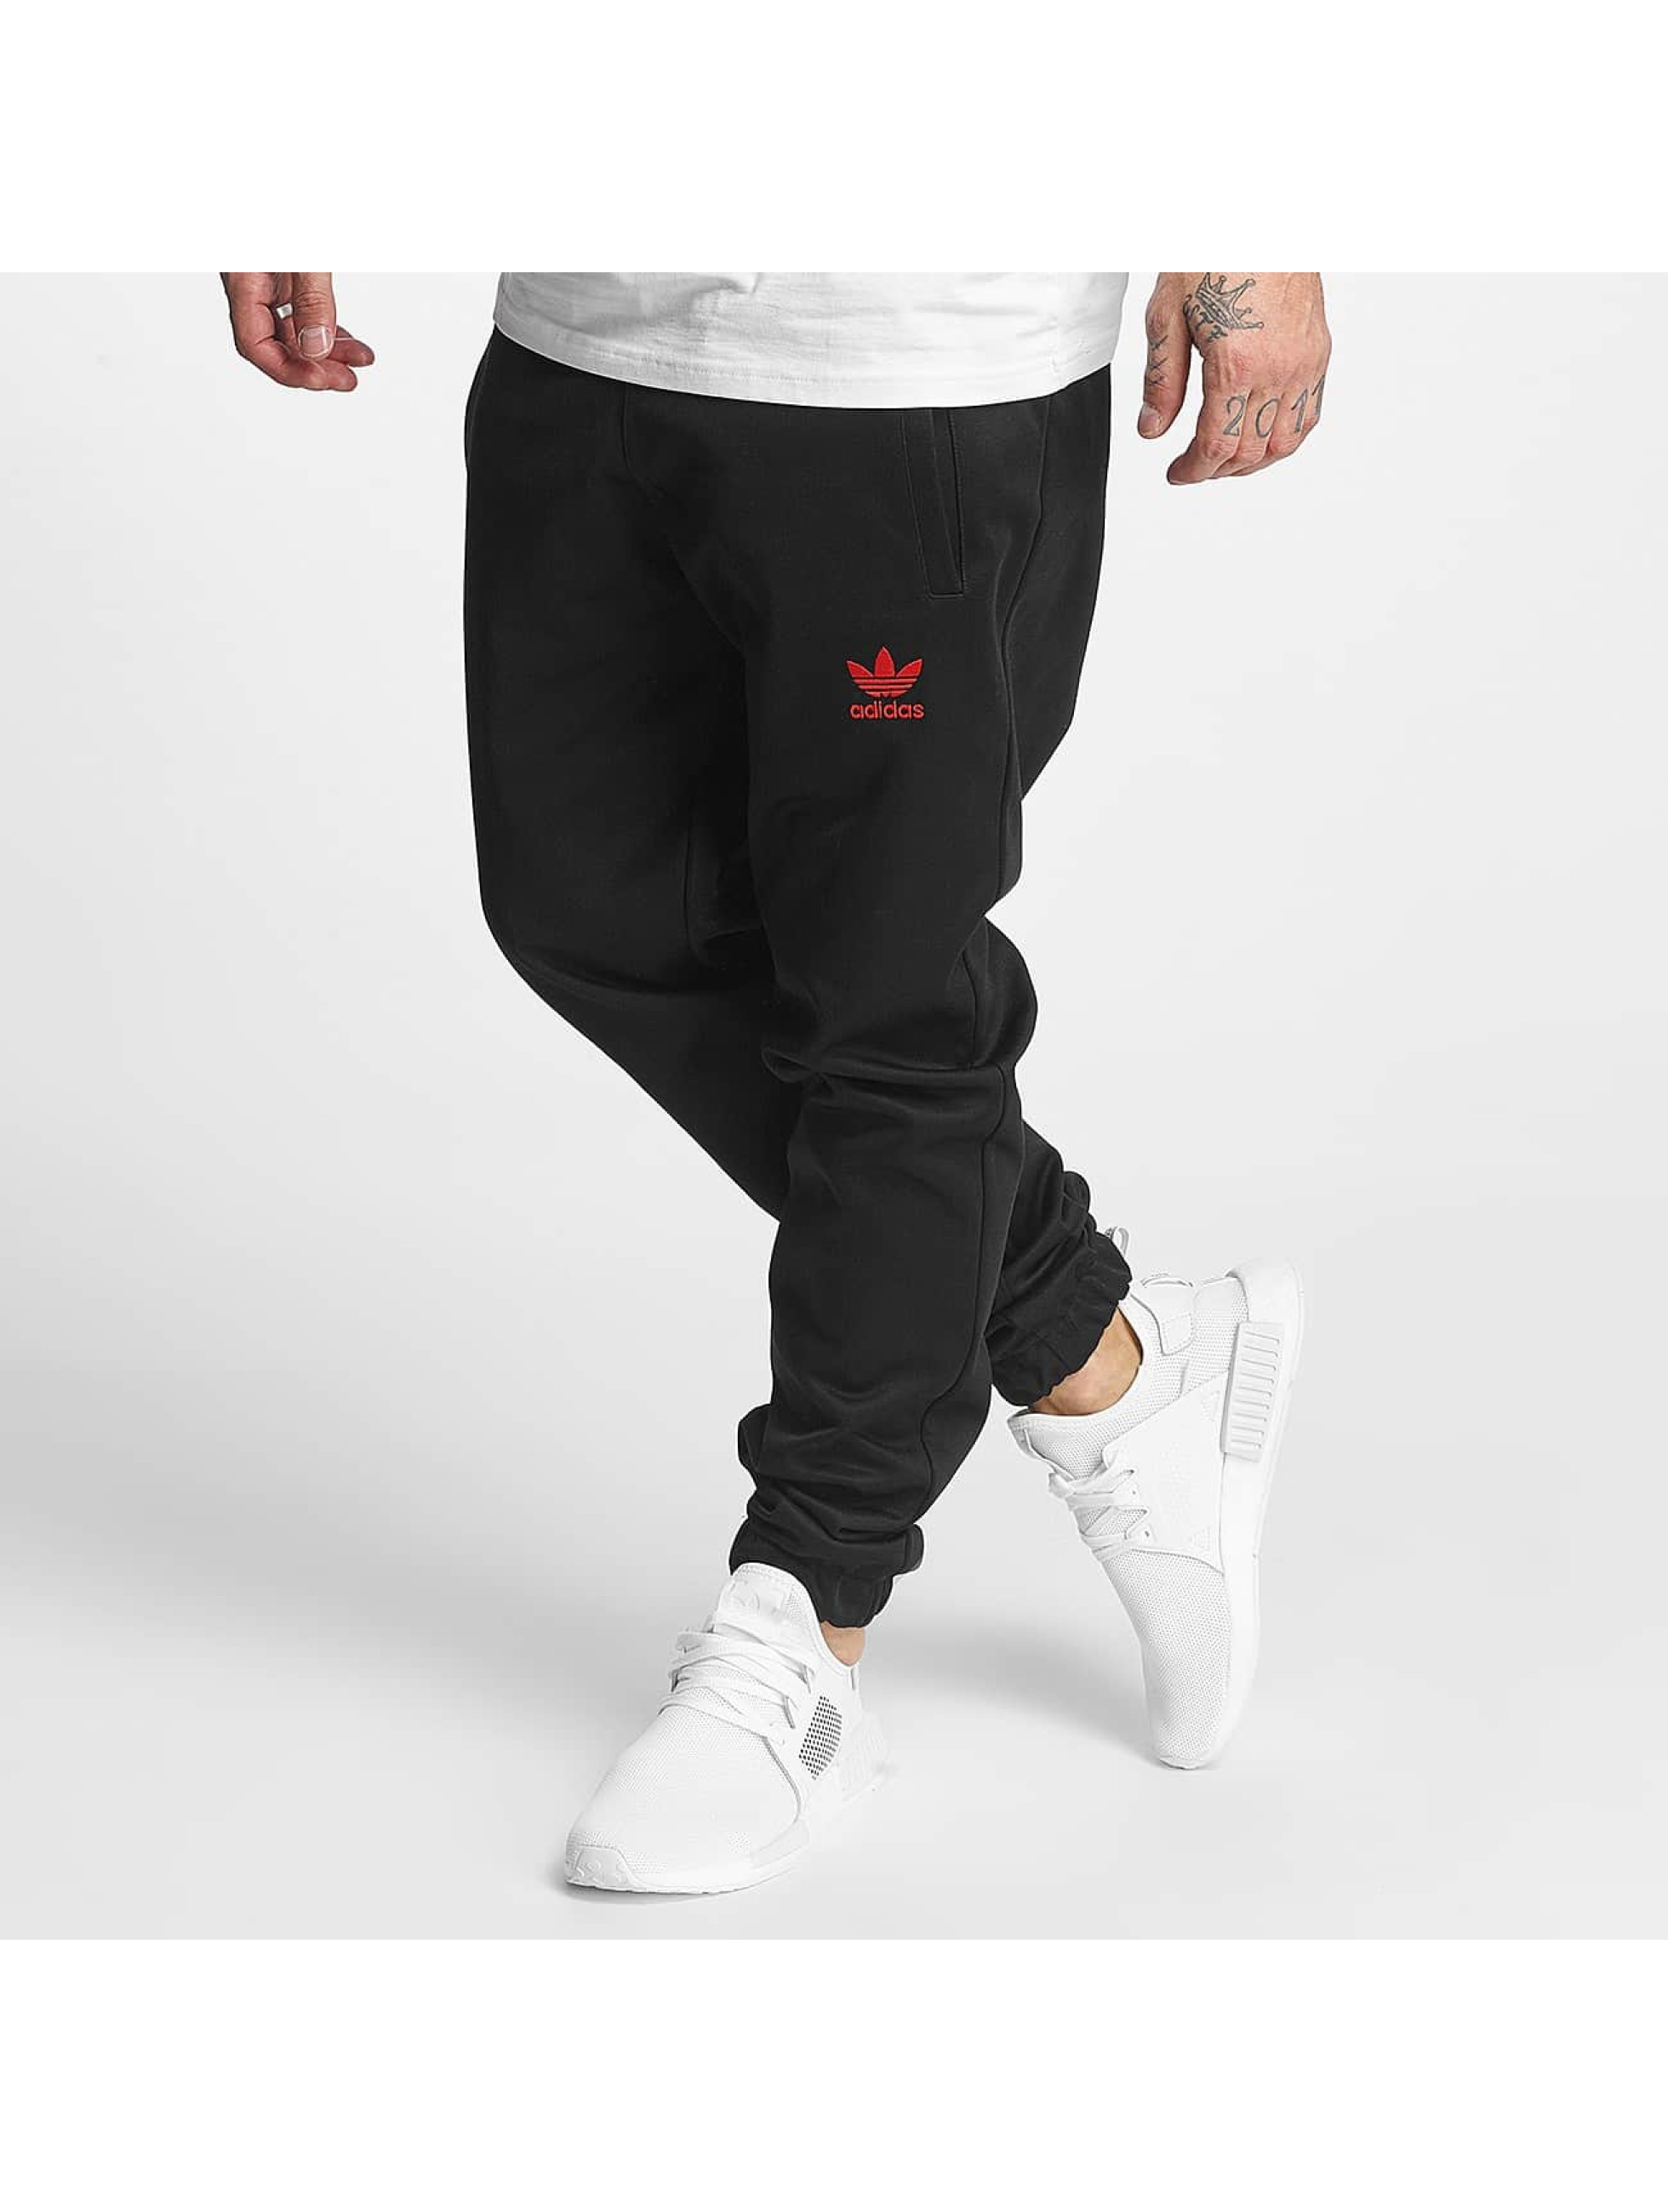 adidas herren hosen jogginghose winter ebay. Black Bedroom Furniture Sets. Home Design Ideas